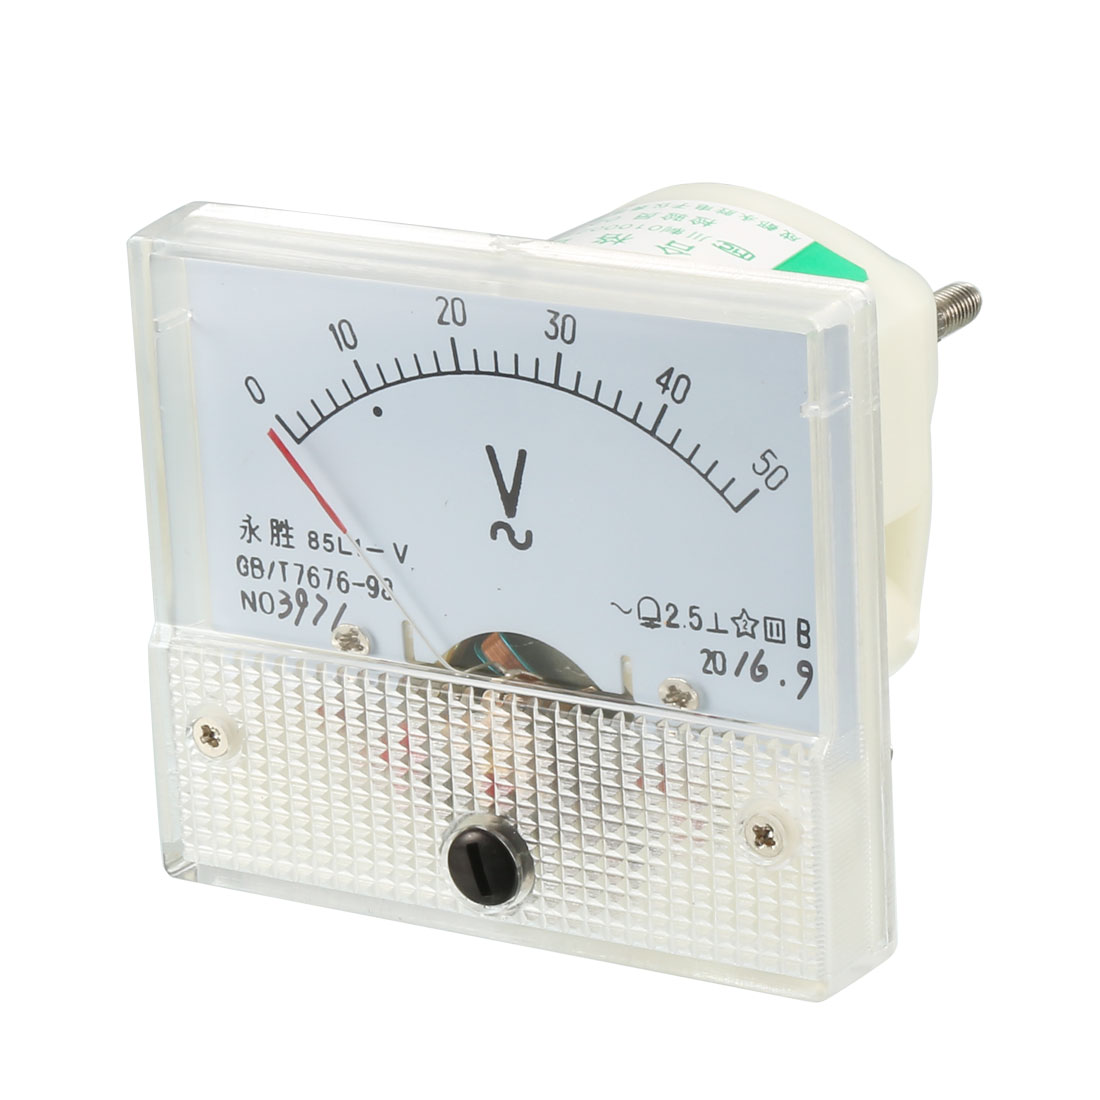 85L1-A AC 0-100mA Rectangle Analog Panel Ammeter Gauge